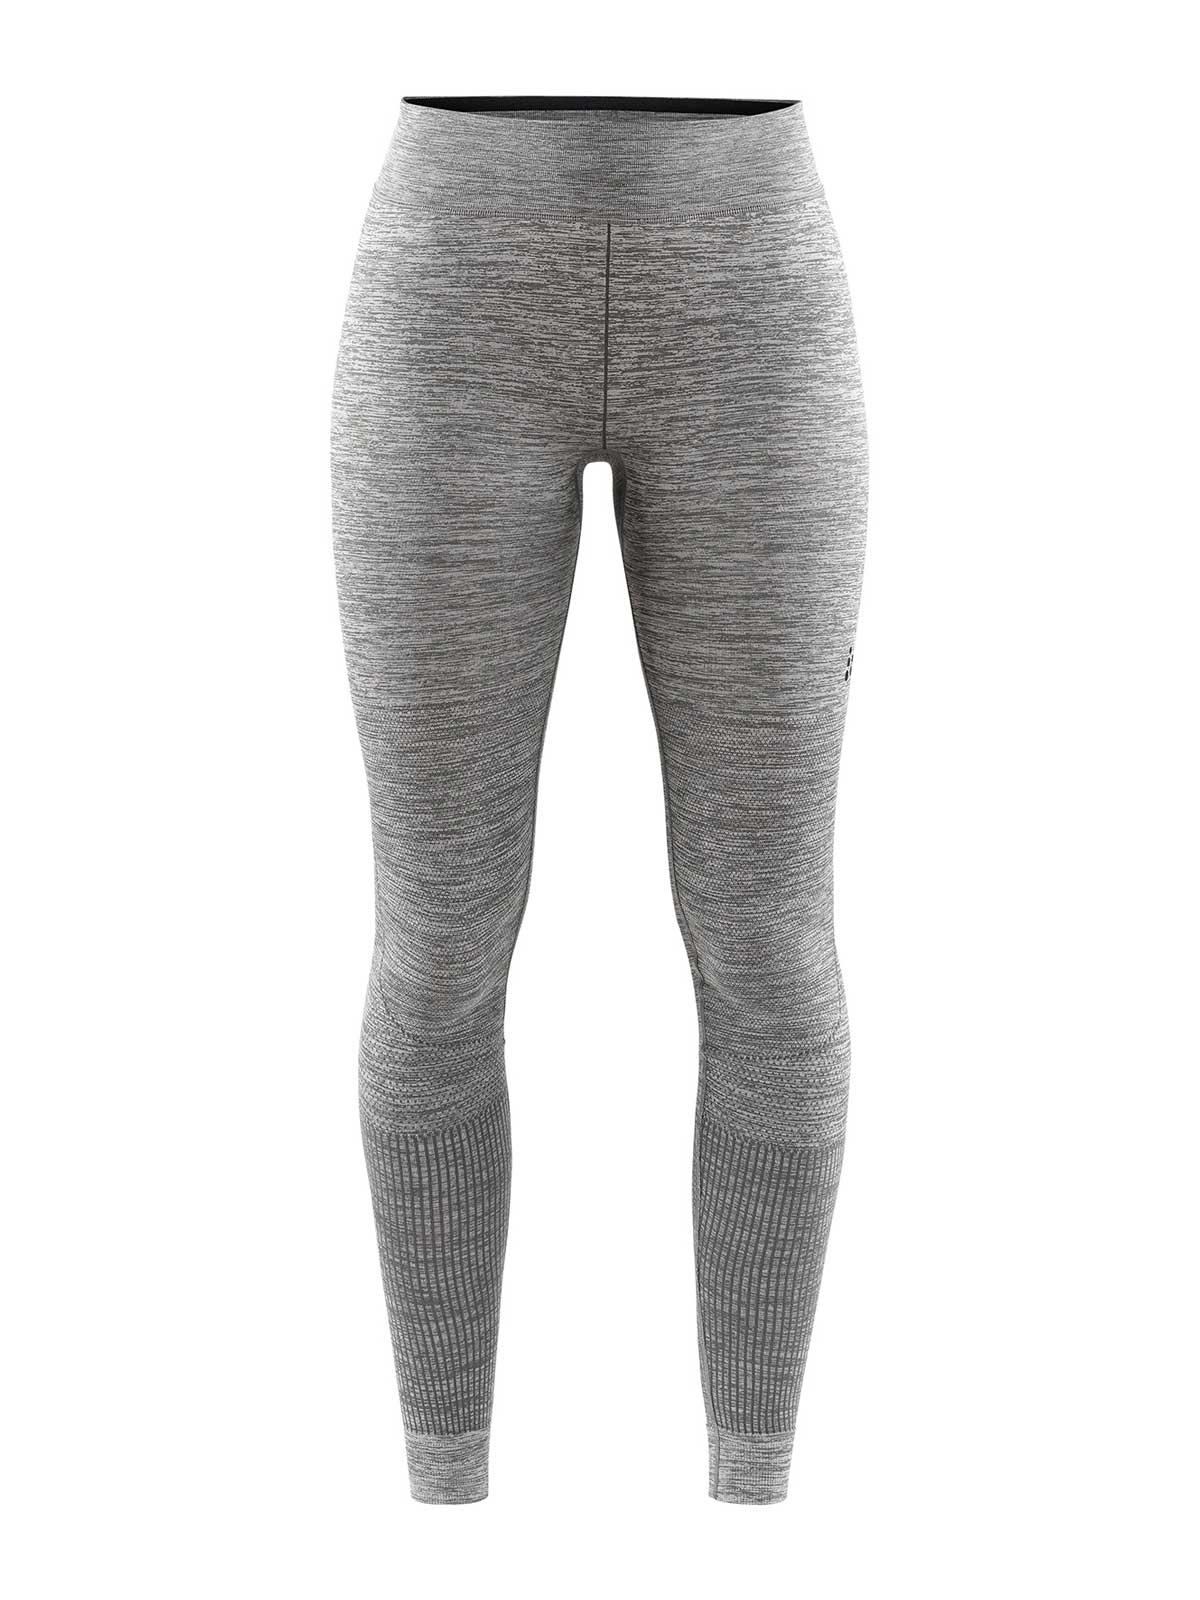 craft women's fuseknit comfort pants in dark grey melange